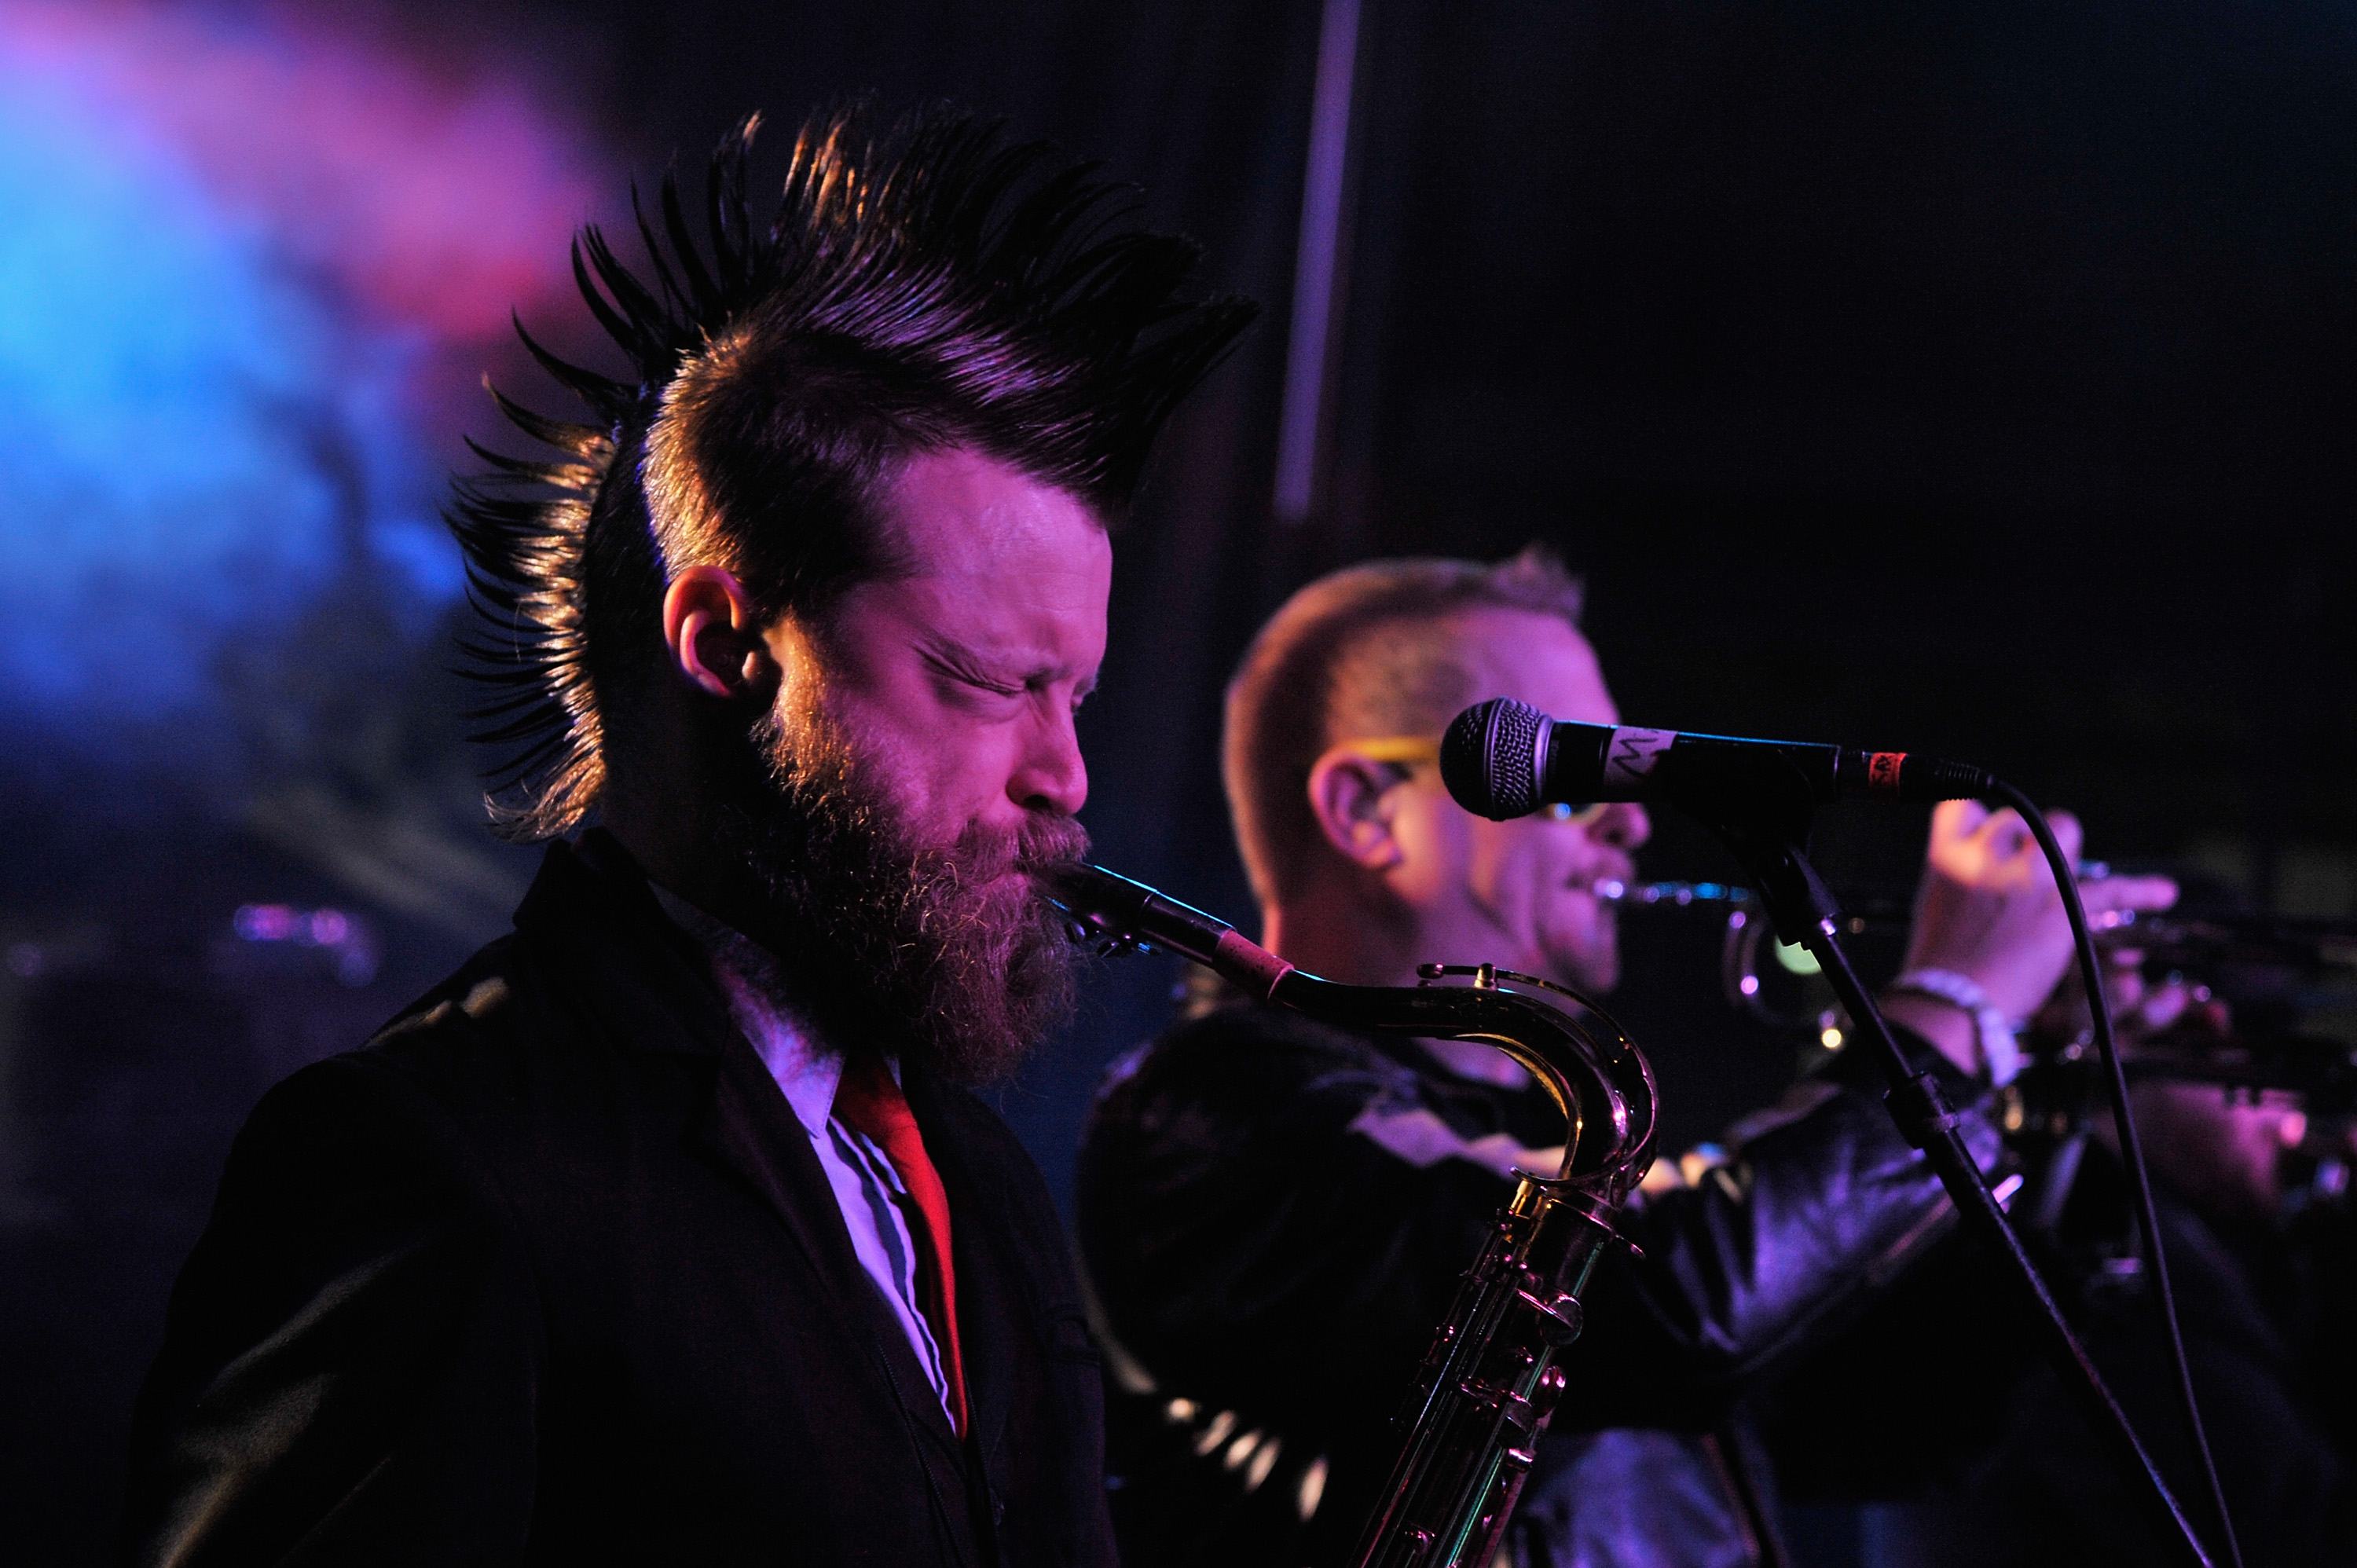 Ska band Reel Big Fish will perform a special outdoor show at the Woods at Bear Creek in Franklinville. (Getty Images)